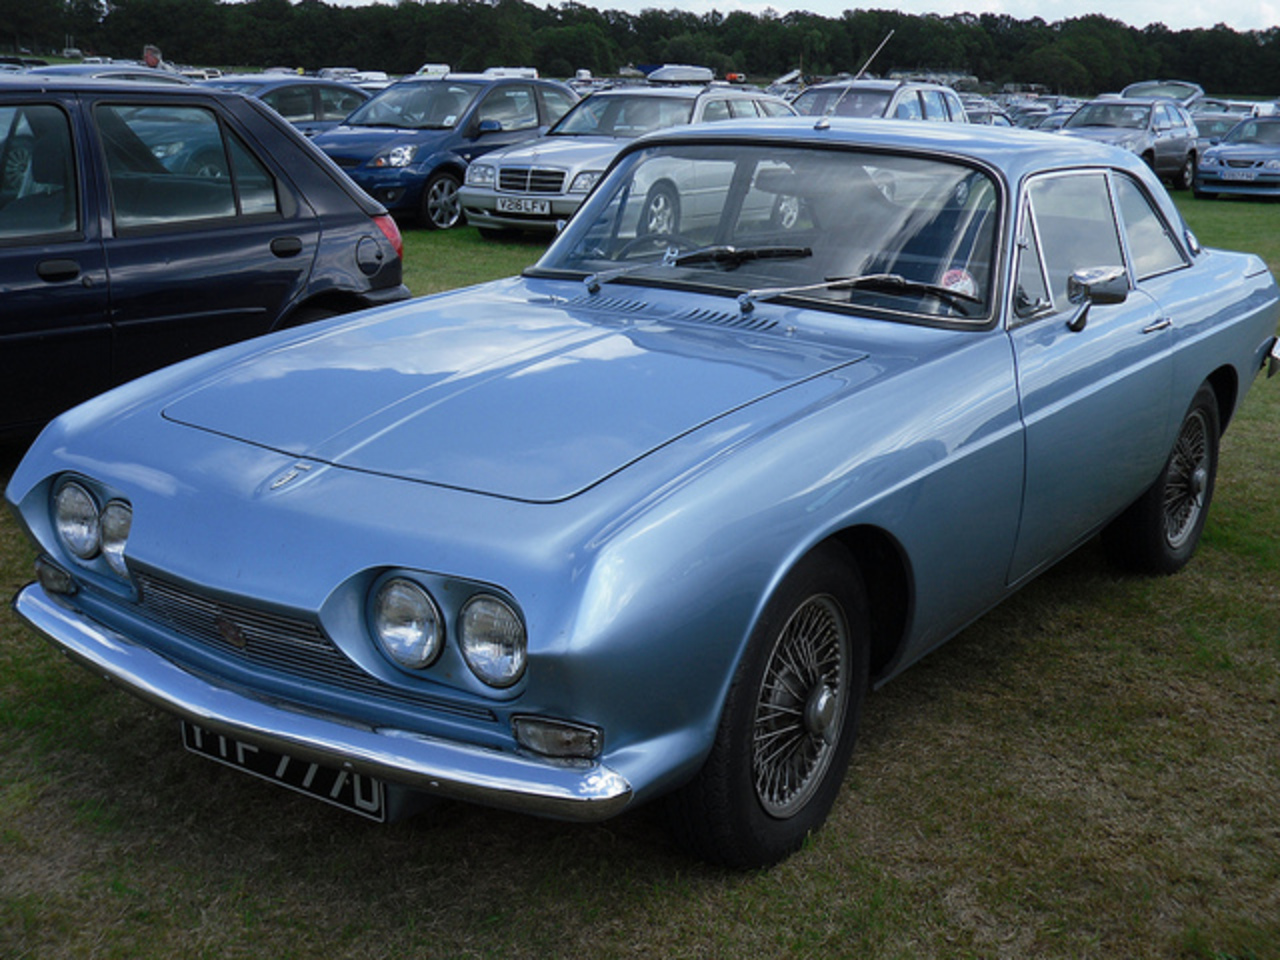 1966 Reliant Scimitar SE4 2.6 Coupe. | Flickr - Photo Sharing!